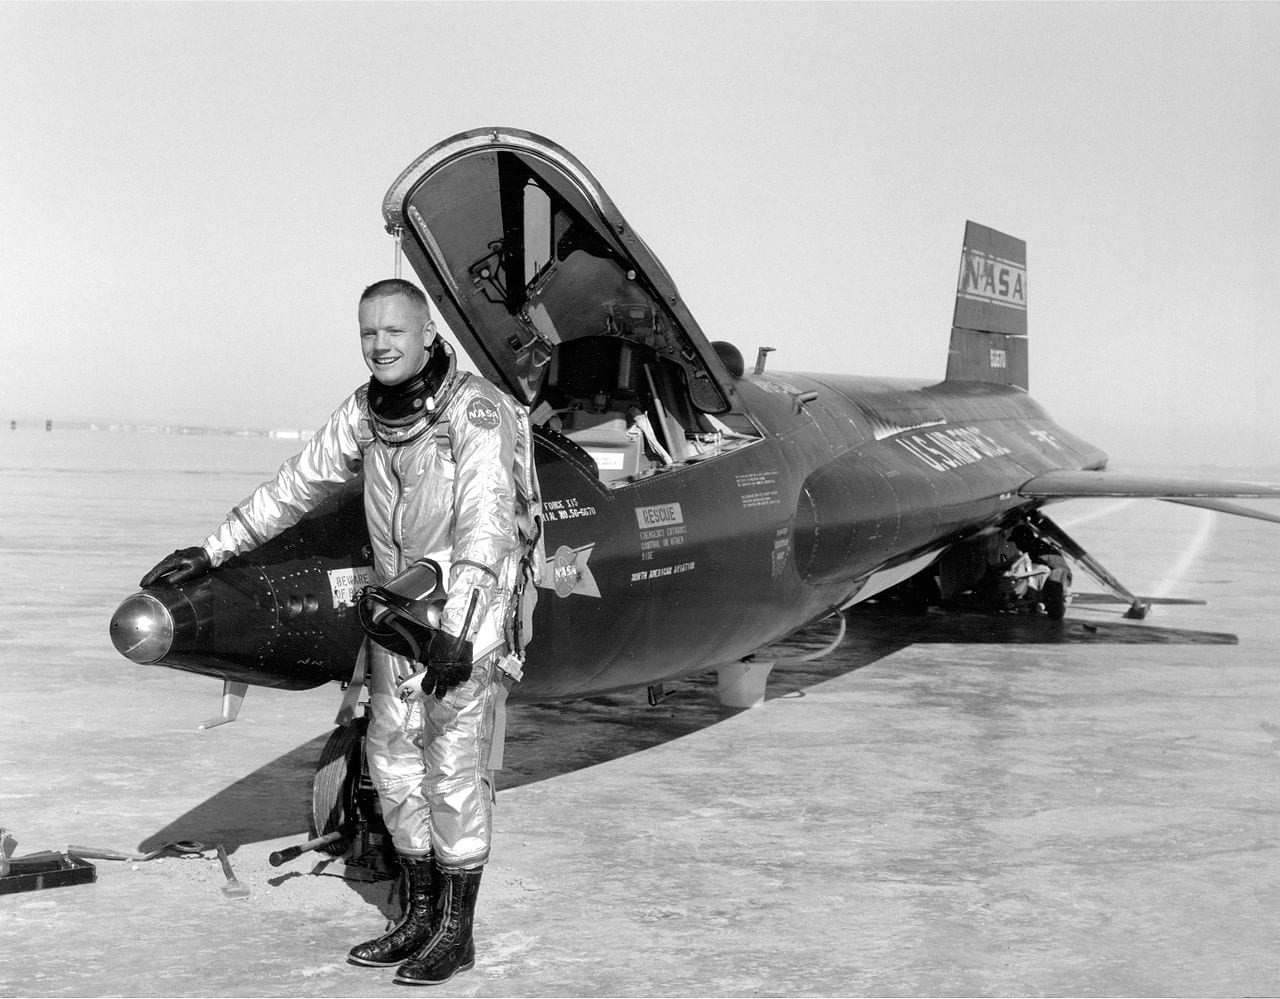 Dryden pilot Neil Armstrong is seen here next to the X-15 ship #1 (56-6670) after a research flight. (NASA)